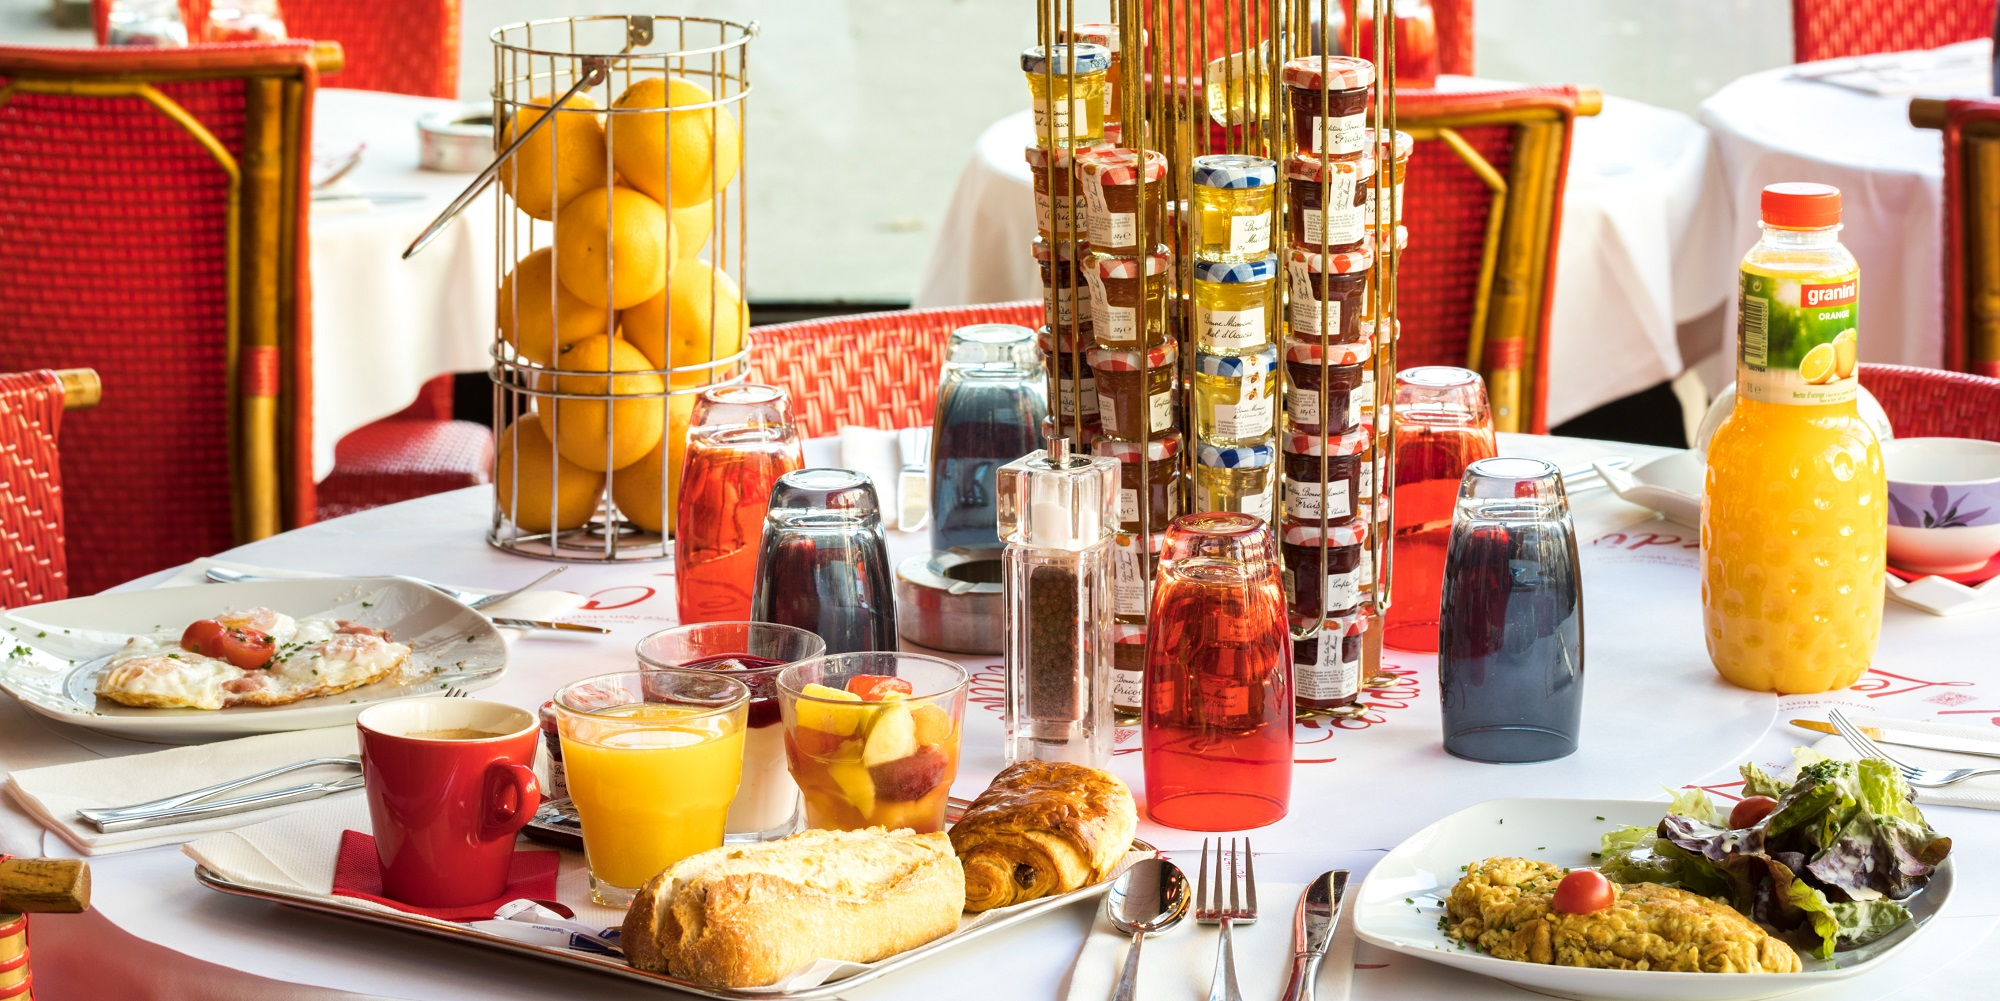 Brunch Le Cardinal (75002 Paris)